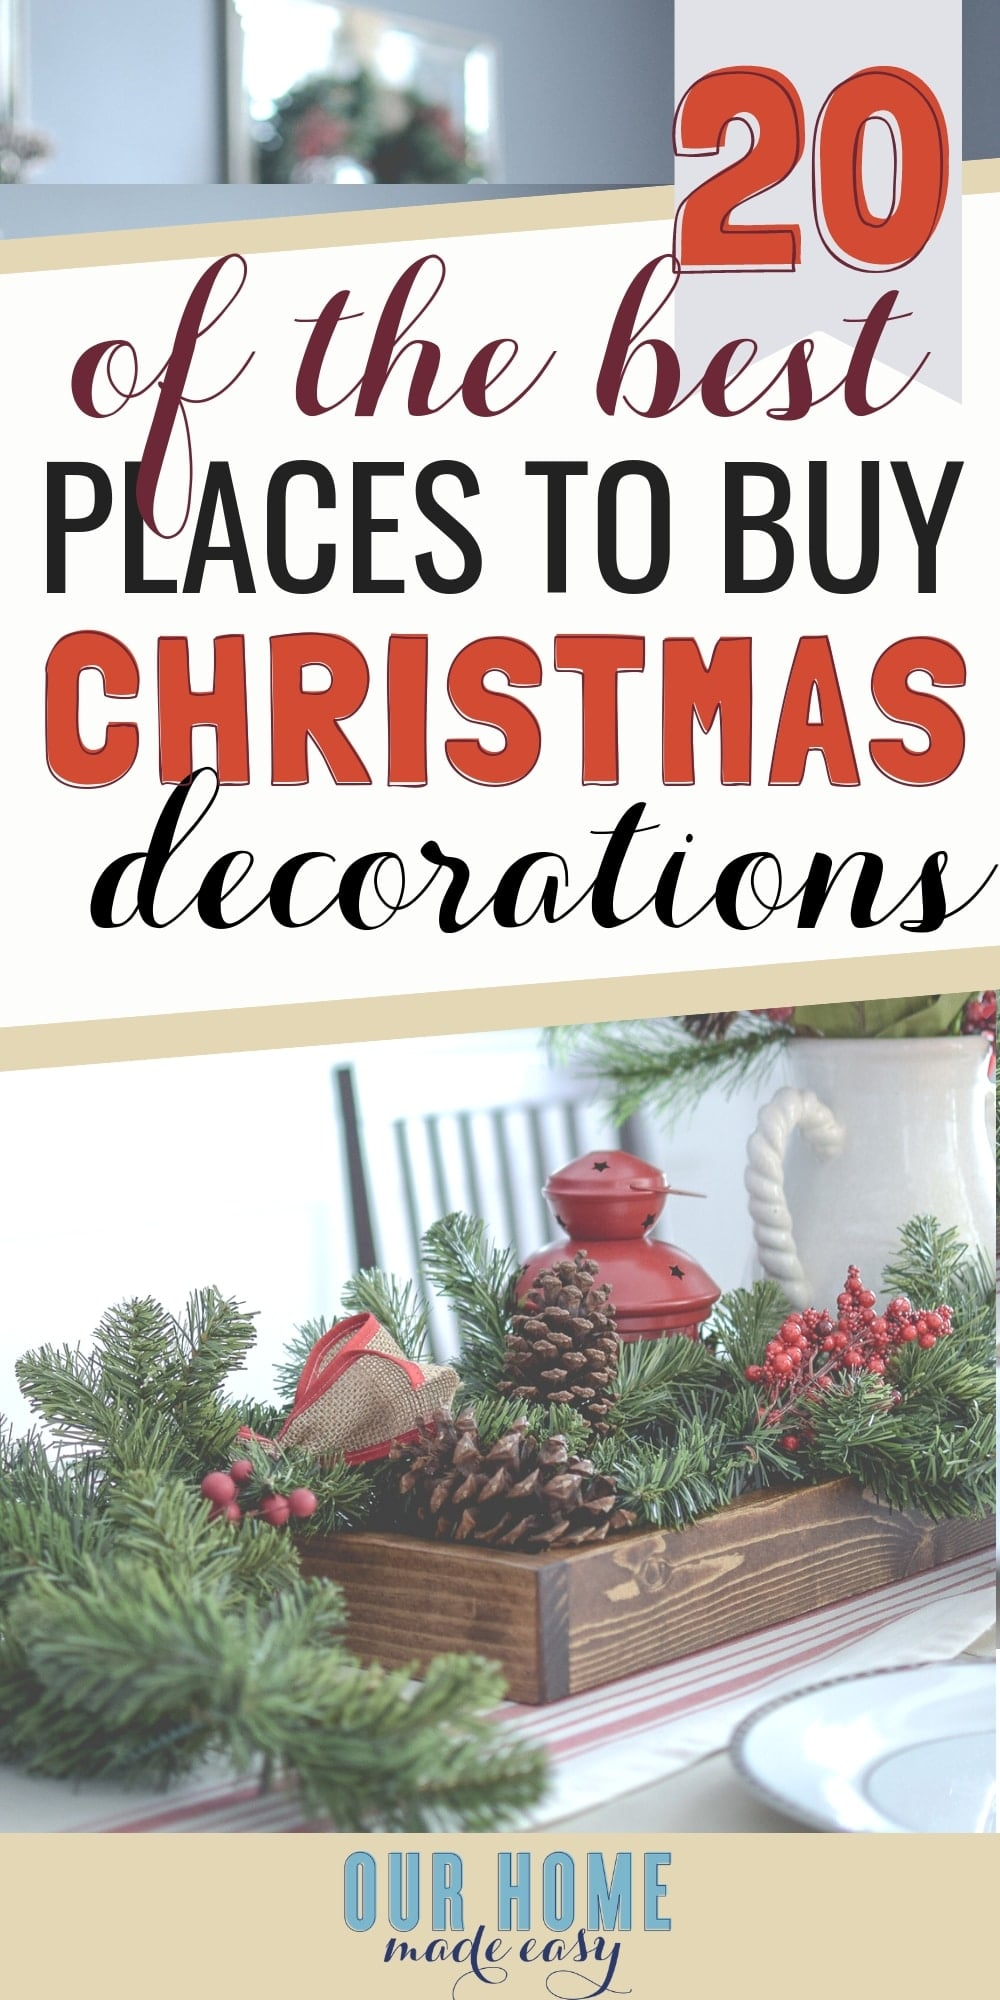 Here are the 20 best places to buy Christmas Decorations! No matter your style or budget, you'll find something that is perfect for your home easily! #christmas #homedecor #ourhomemadeeasy